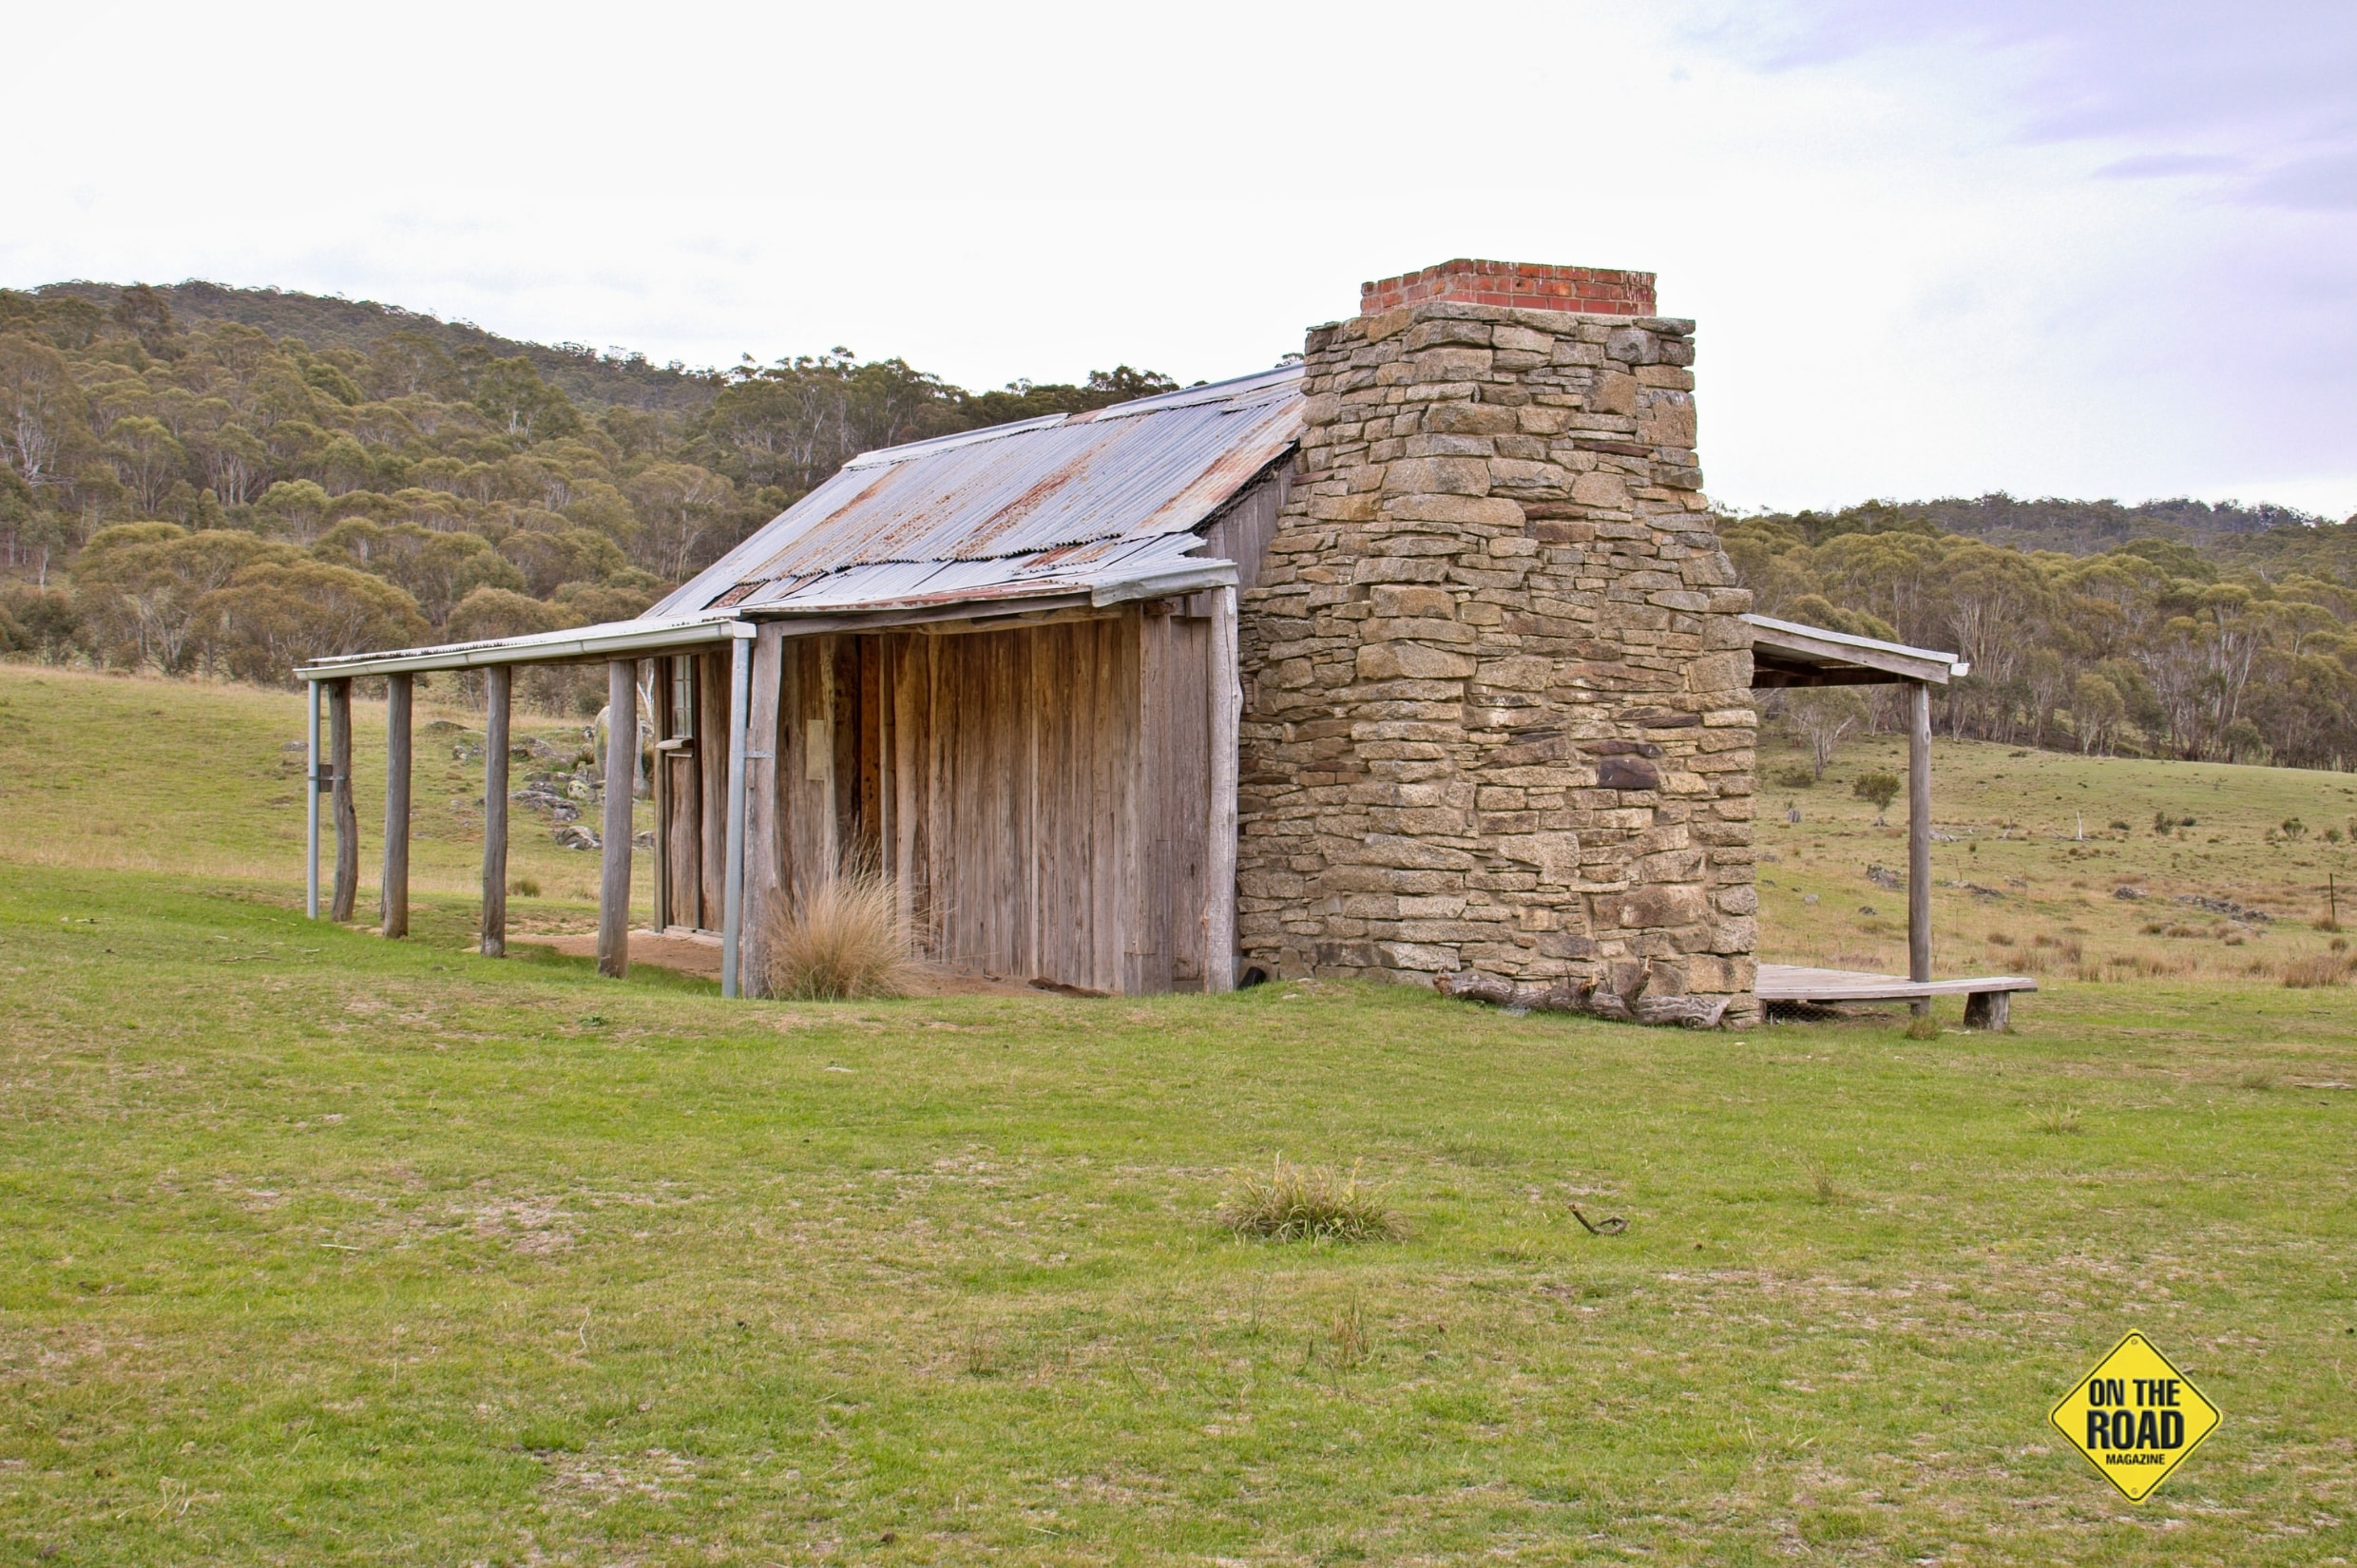 Historic Brayshaws Homestead marks the starting point for the Settlers Track Walk.